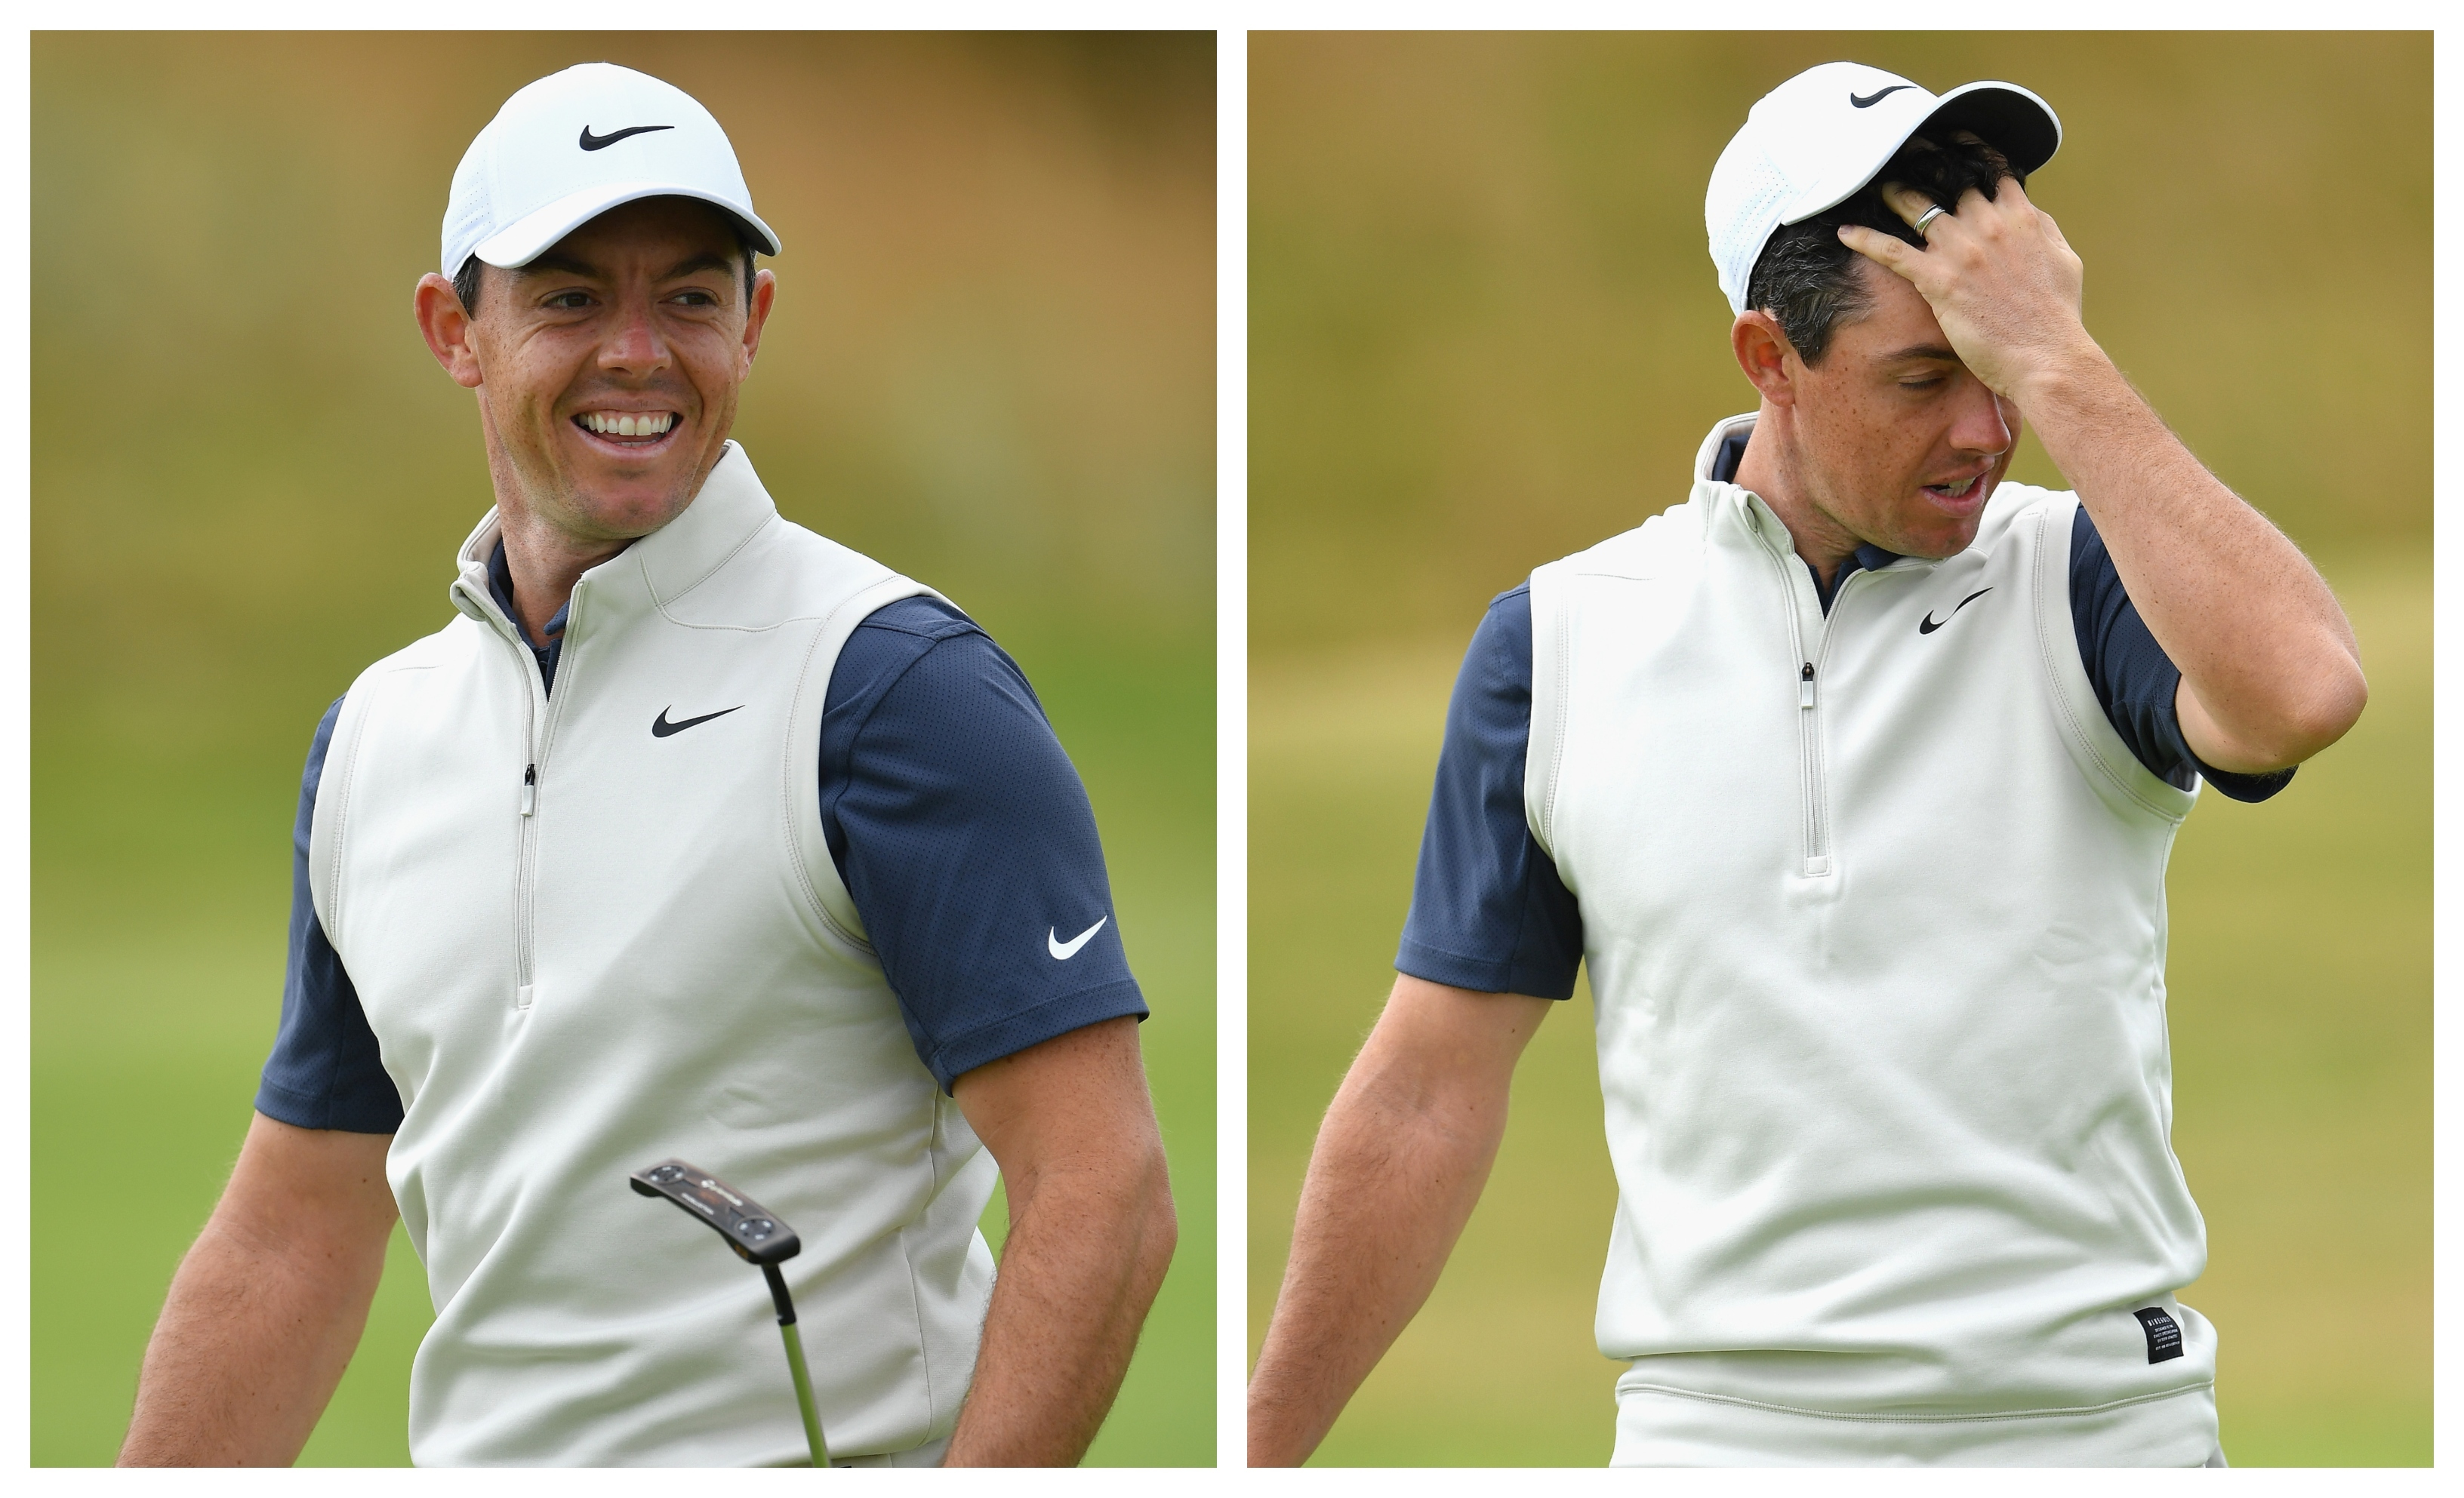 Will it be boom or bust for Rory McIlroy at Carnoustie? (Stuart Franklin / Getty Images)